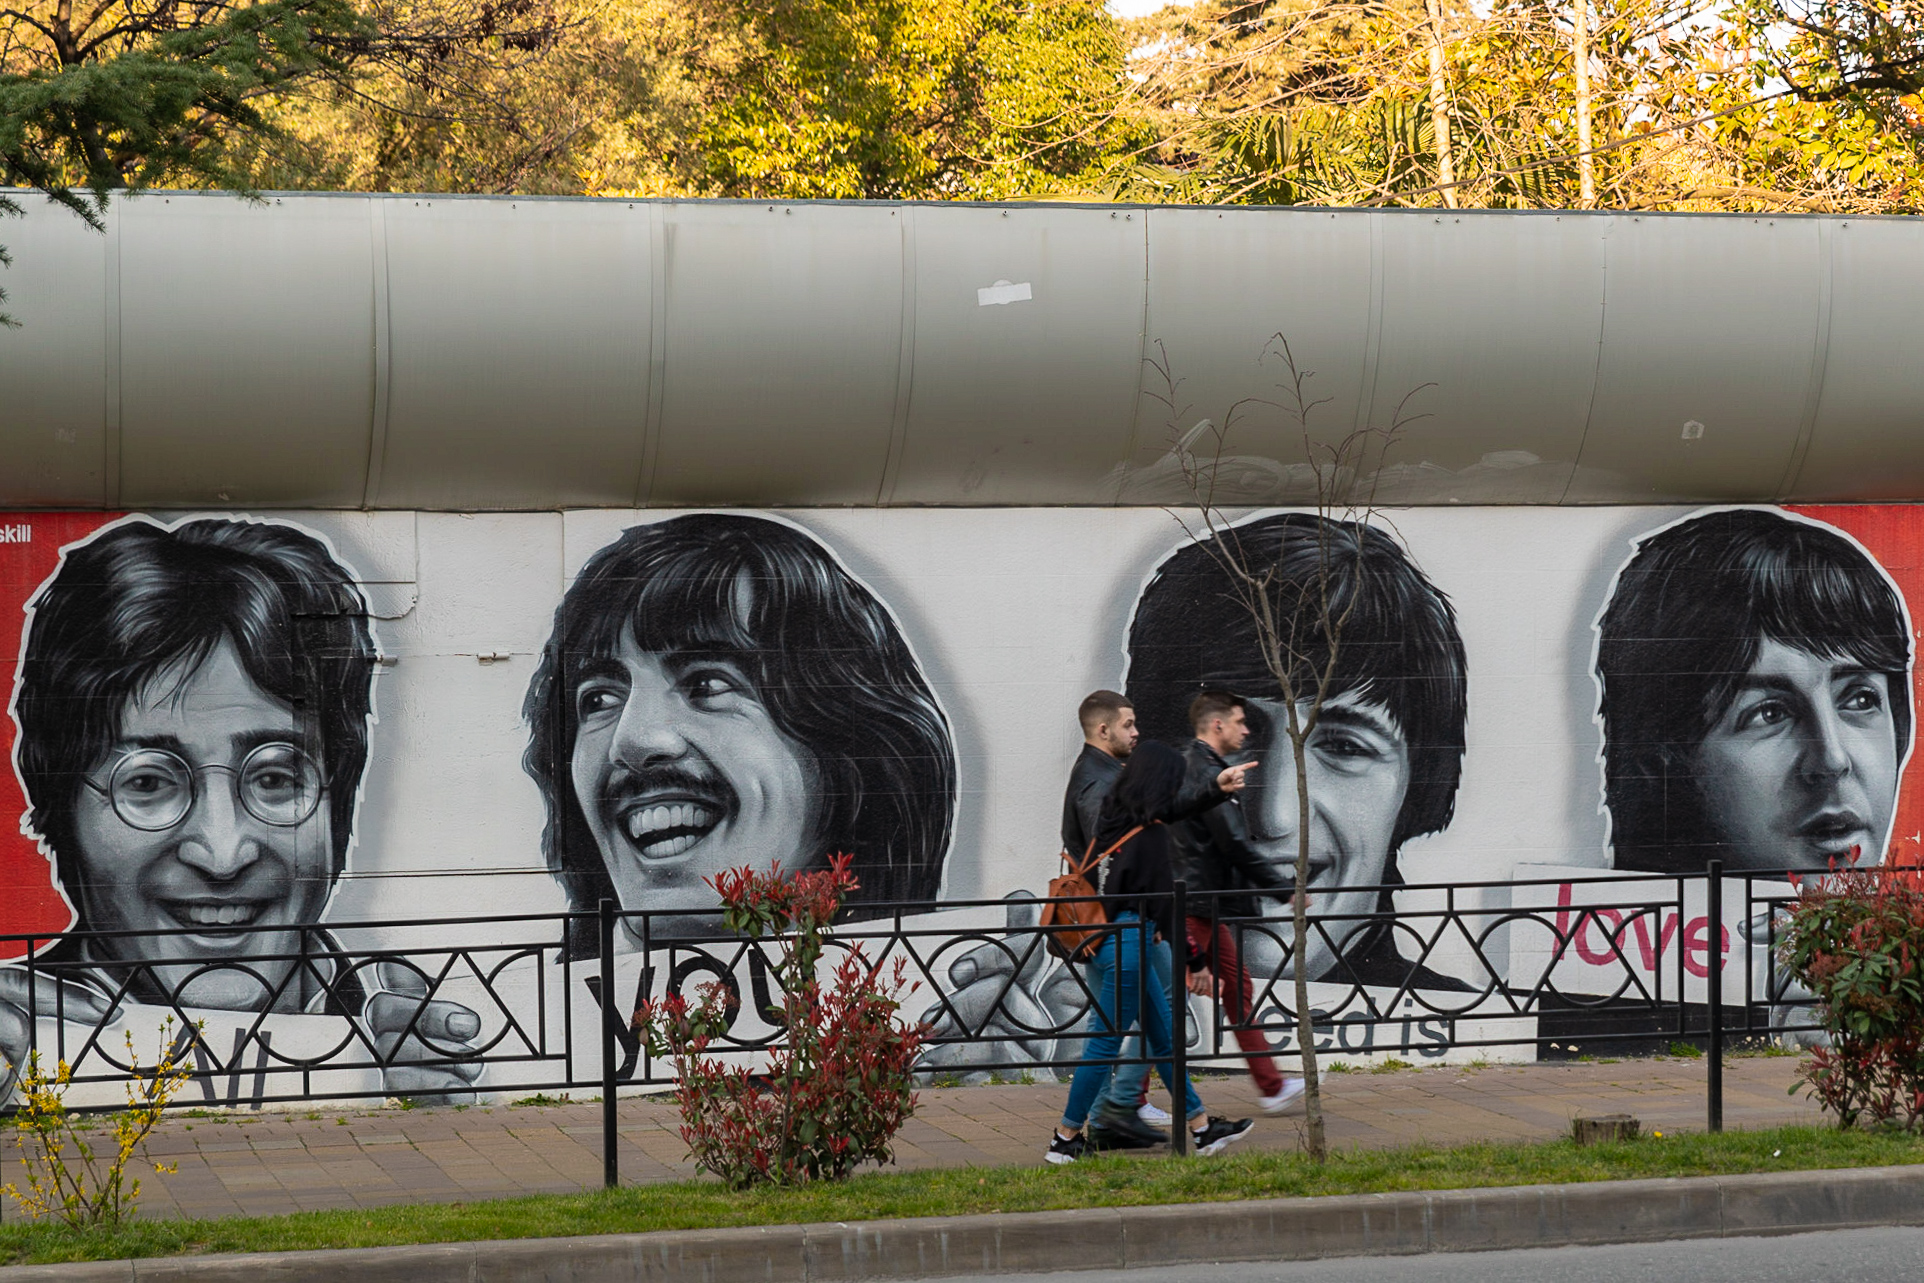 Beatles in Sochi, Russian Federation